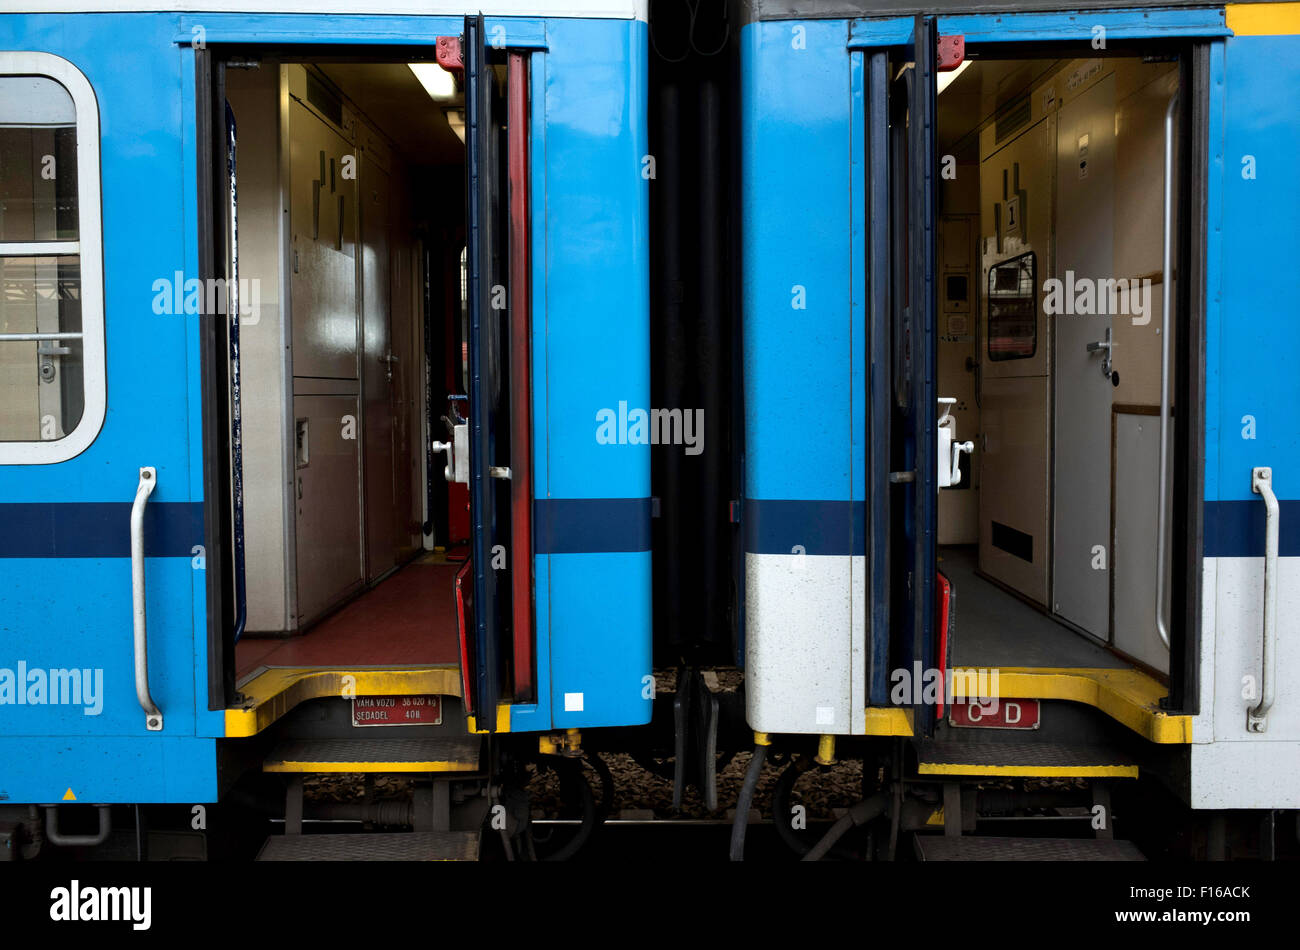 two train carriages, at the railway station, doors open - Stock Image